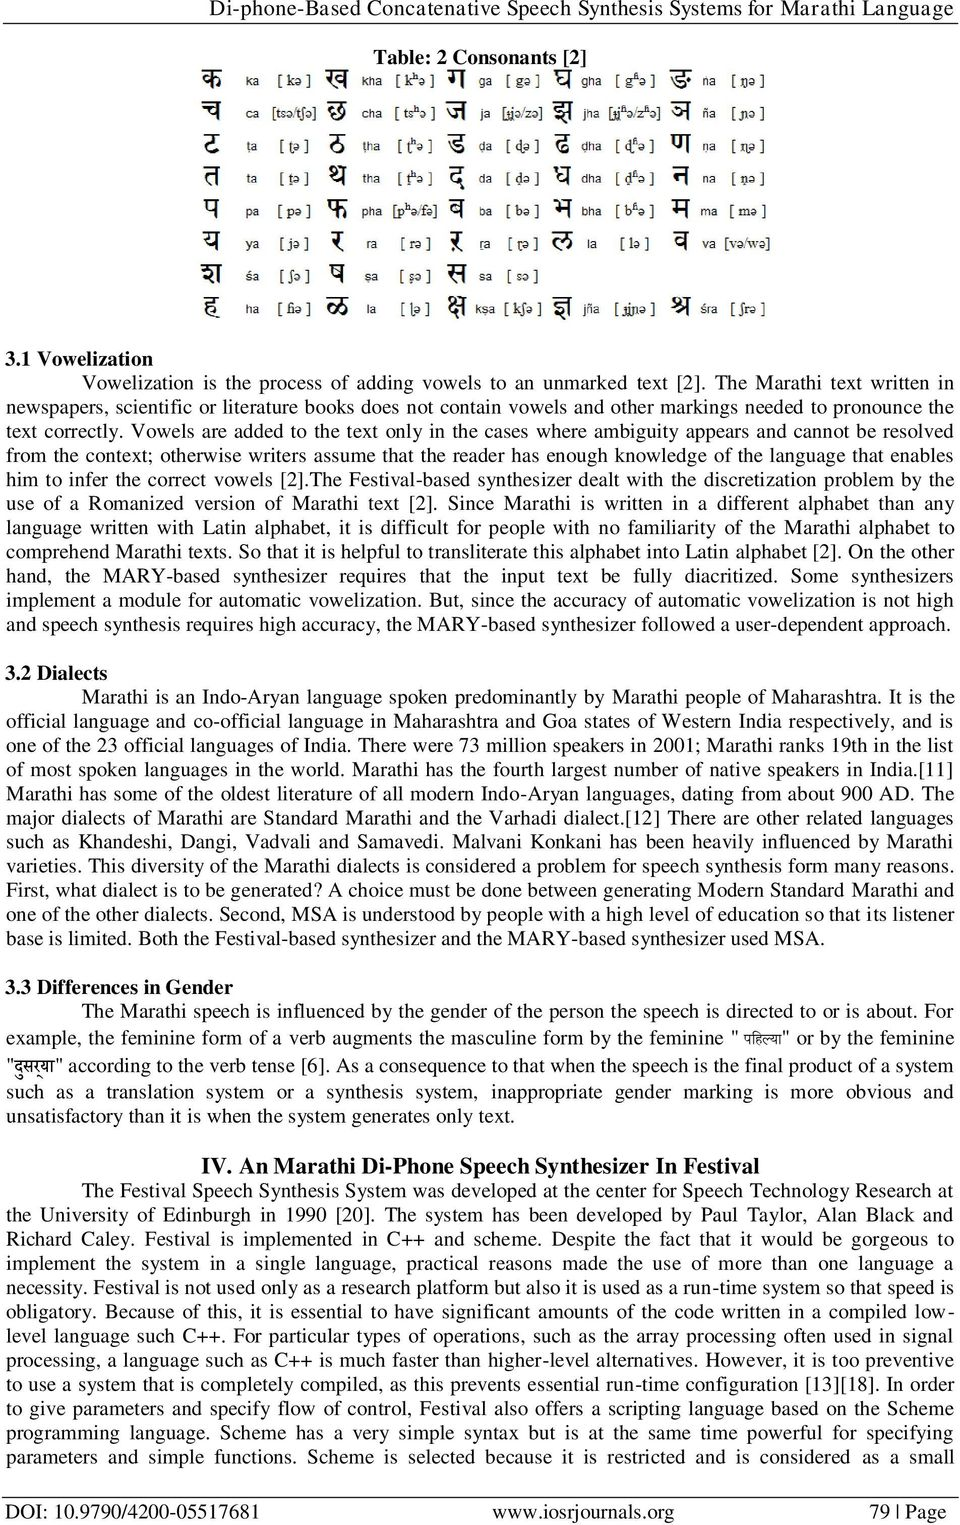 Di-phone-Based Concatenative Speech Synthesis Systems for